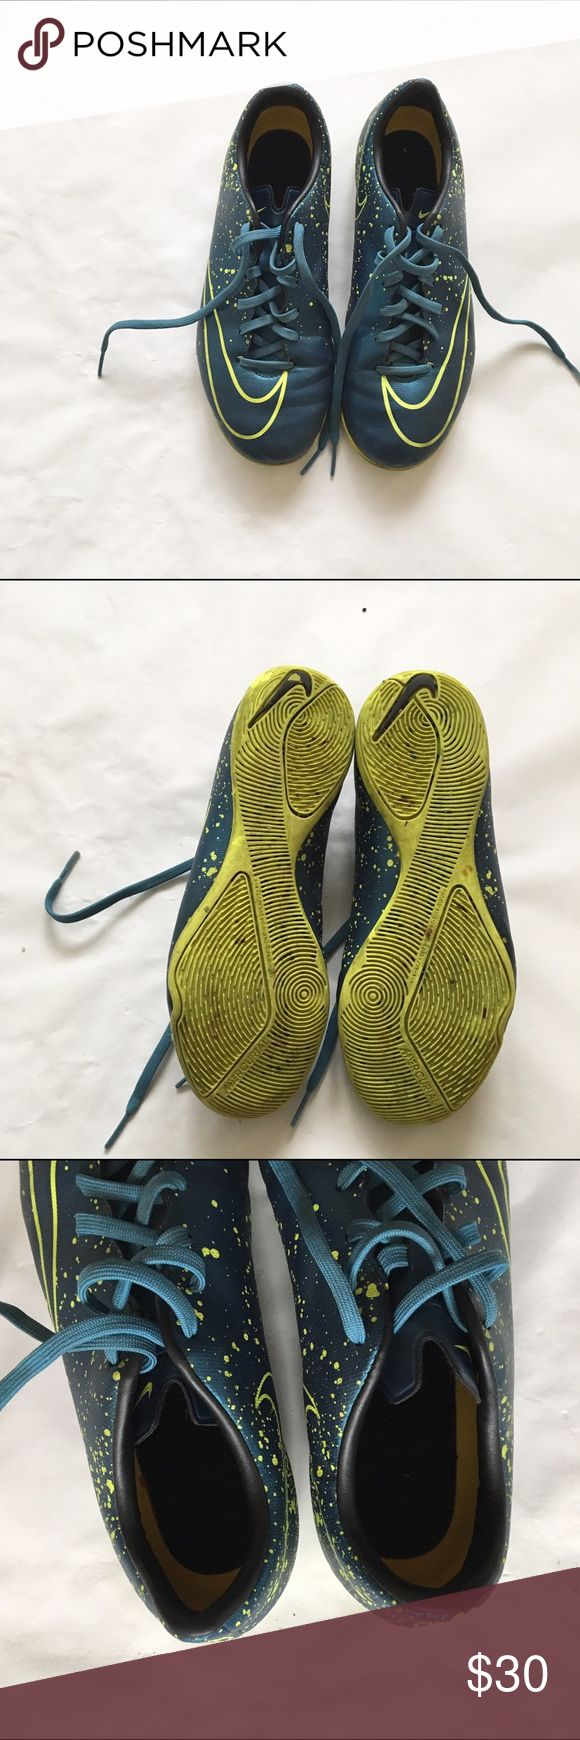 NIKE TURF SHOES KIDS 5.5 NIKE TURF SHOES KIDS 5.5. Used, very good condition. Nike Shoes